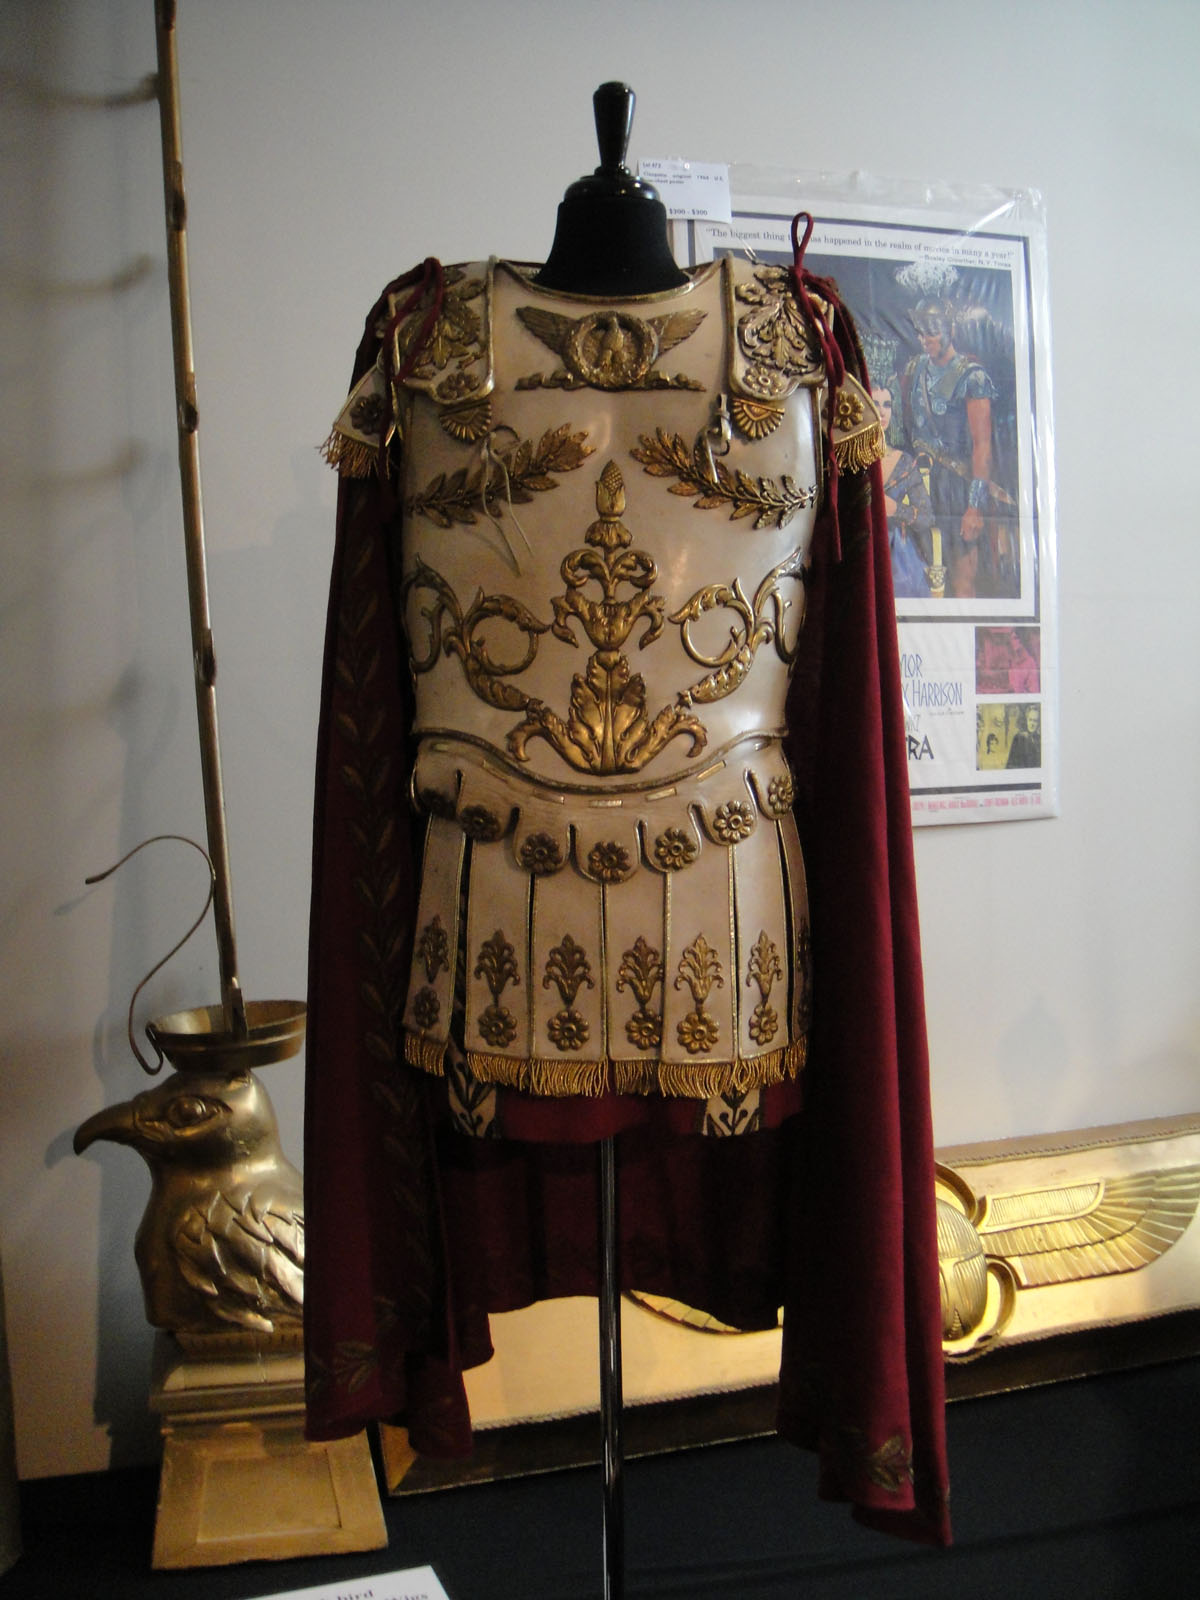 File Debbie Reynolds Auction Costume Worn By Richard Burton In Cleopatra 1963 5851596391 2 Jpg Wikimedia Commons